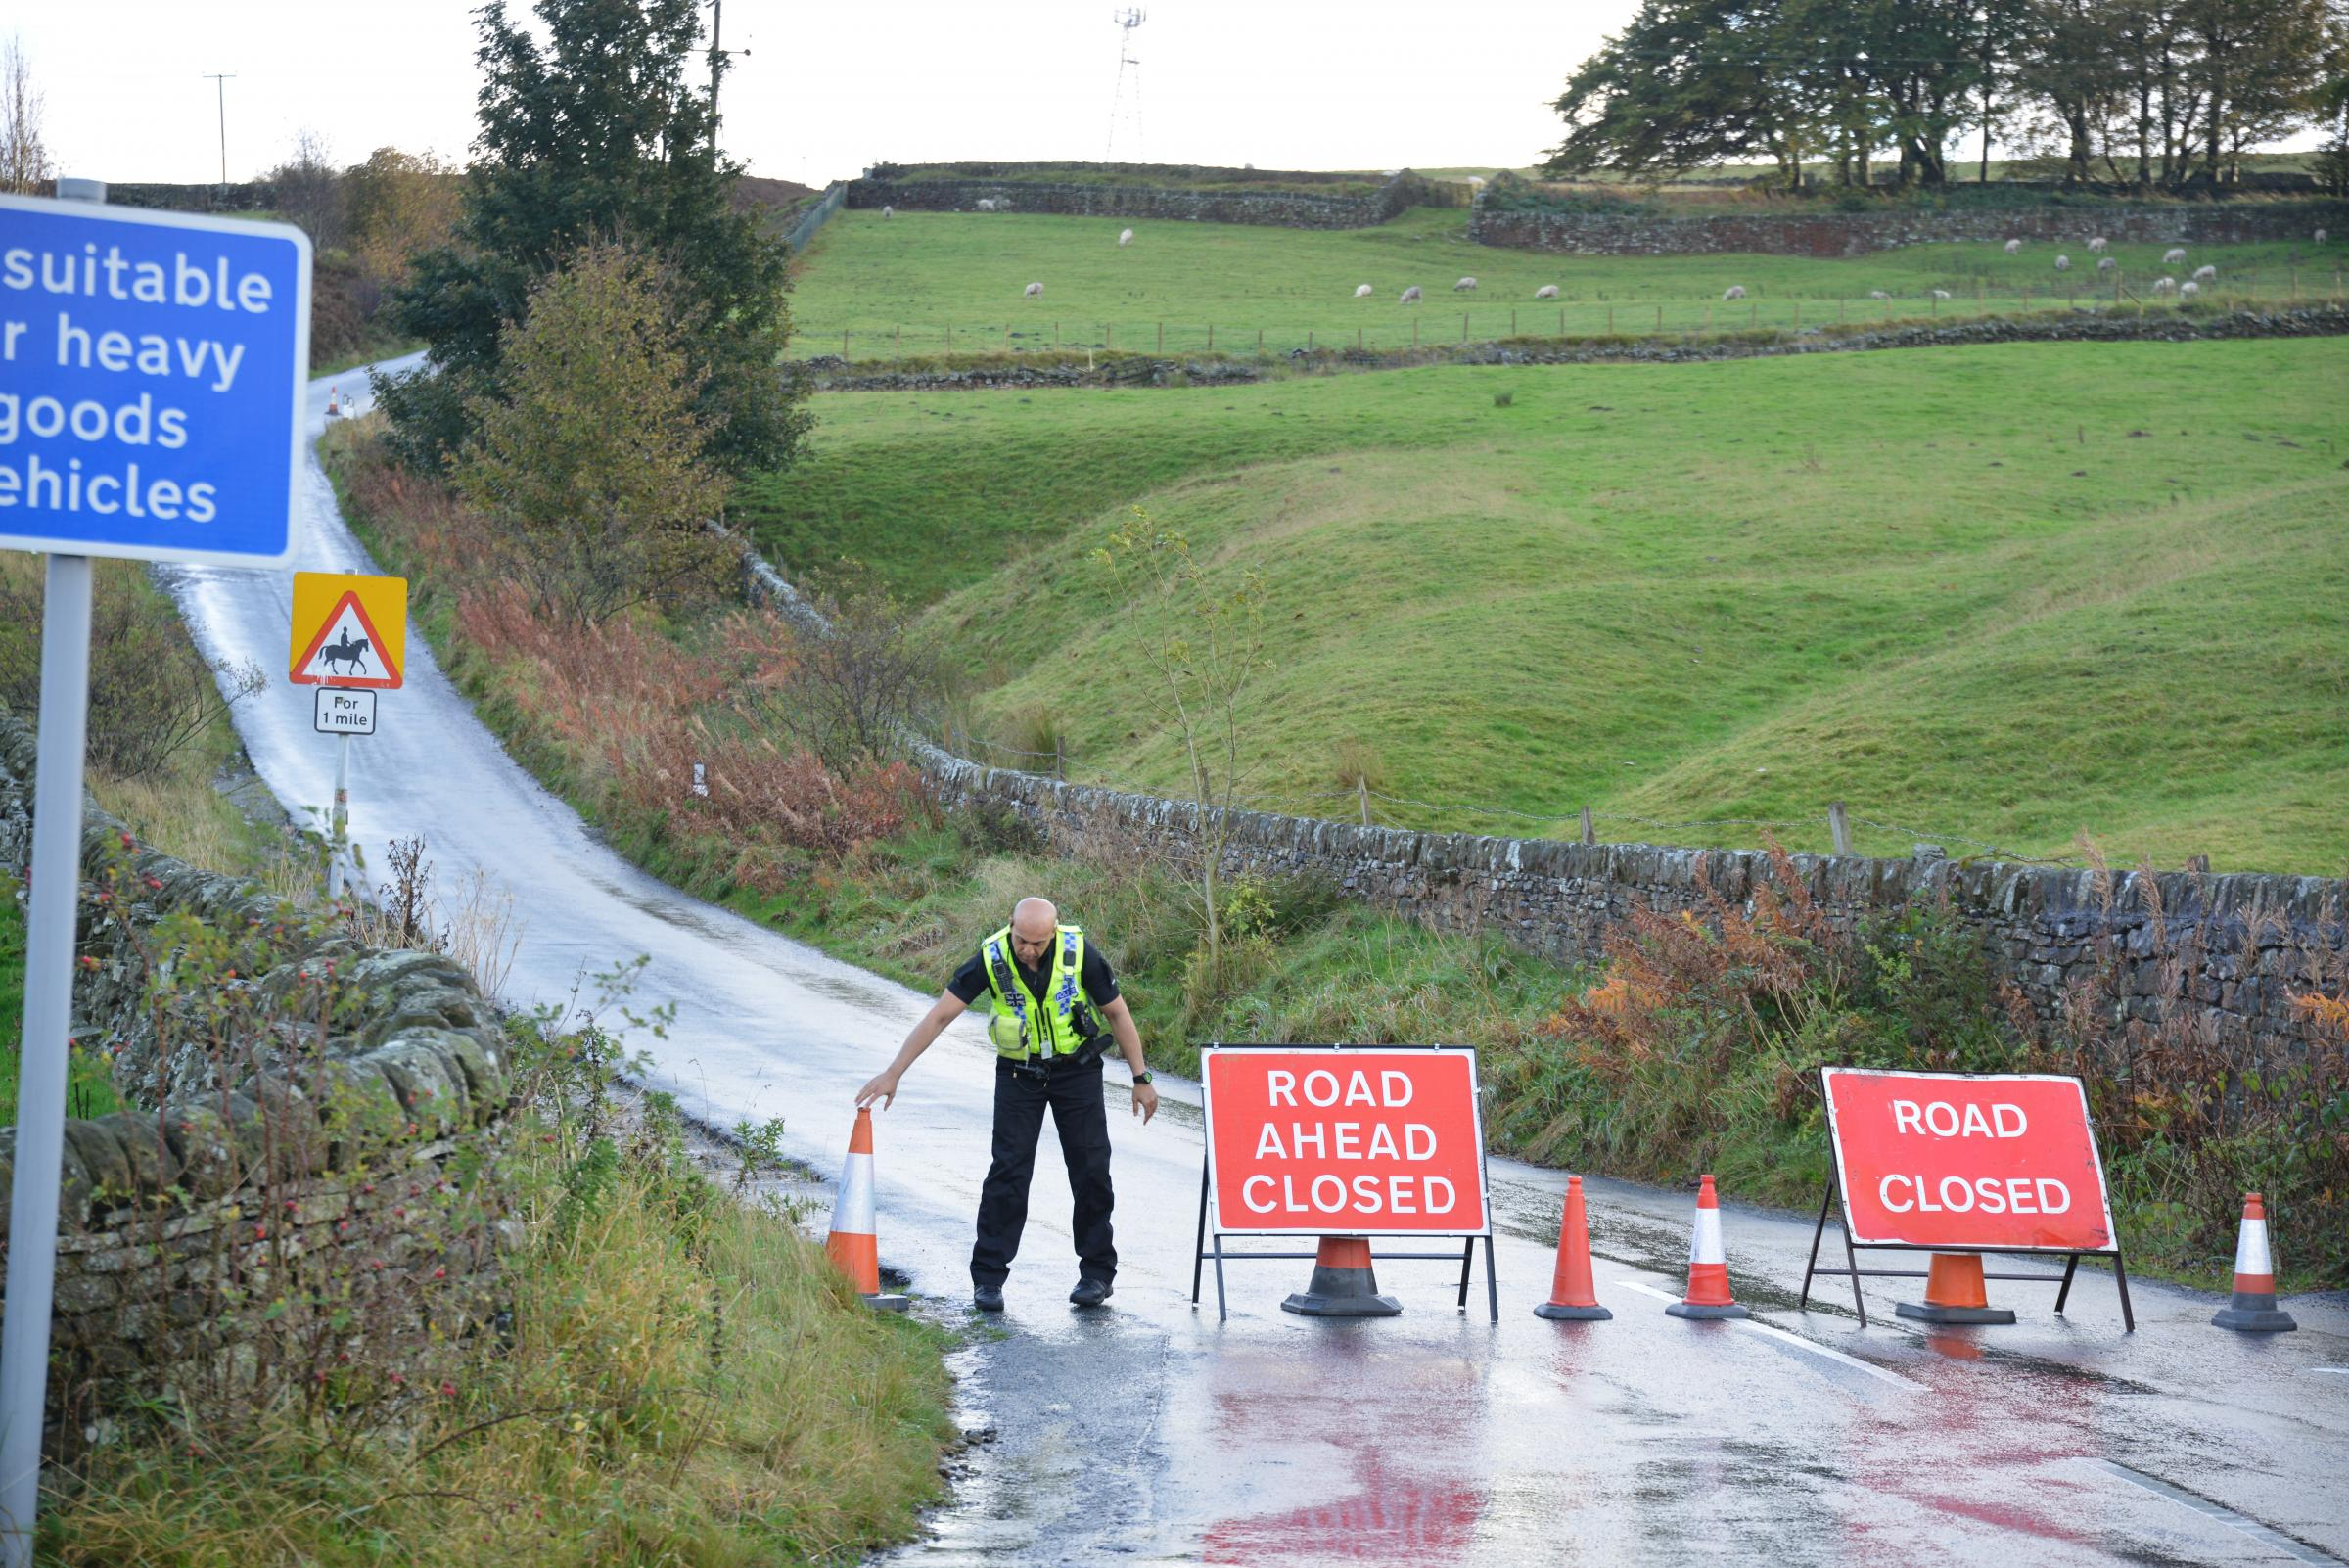 Moorland was cordoned off by police